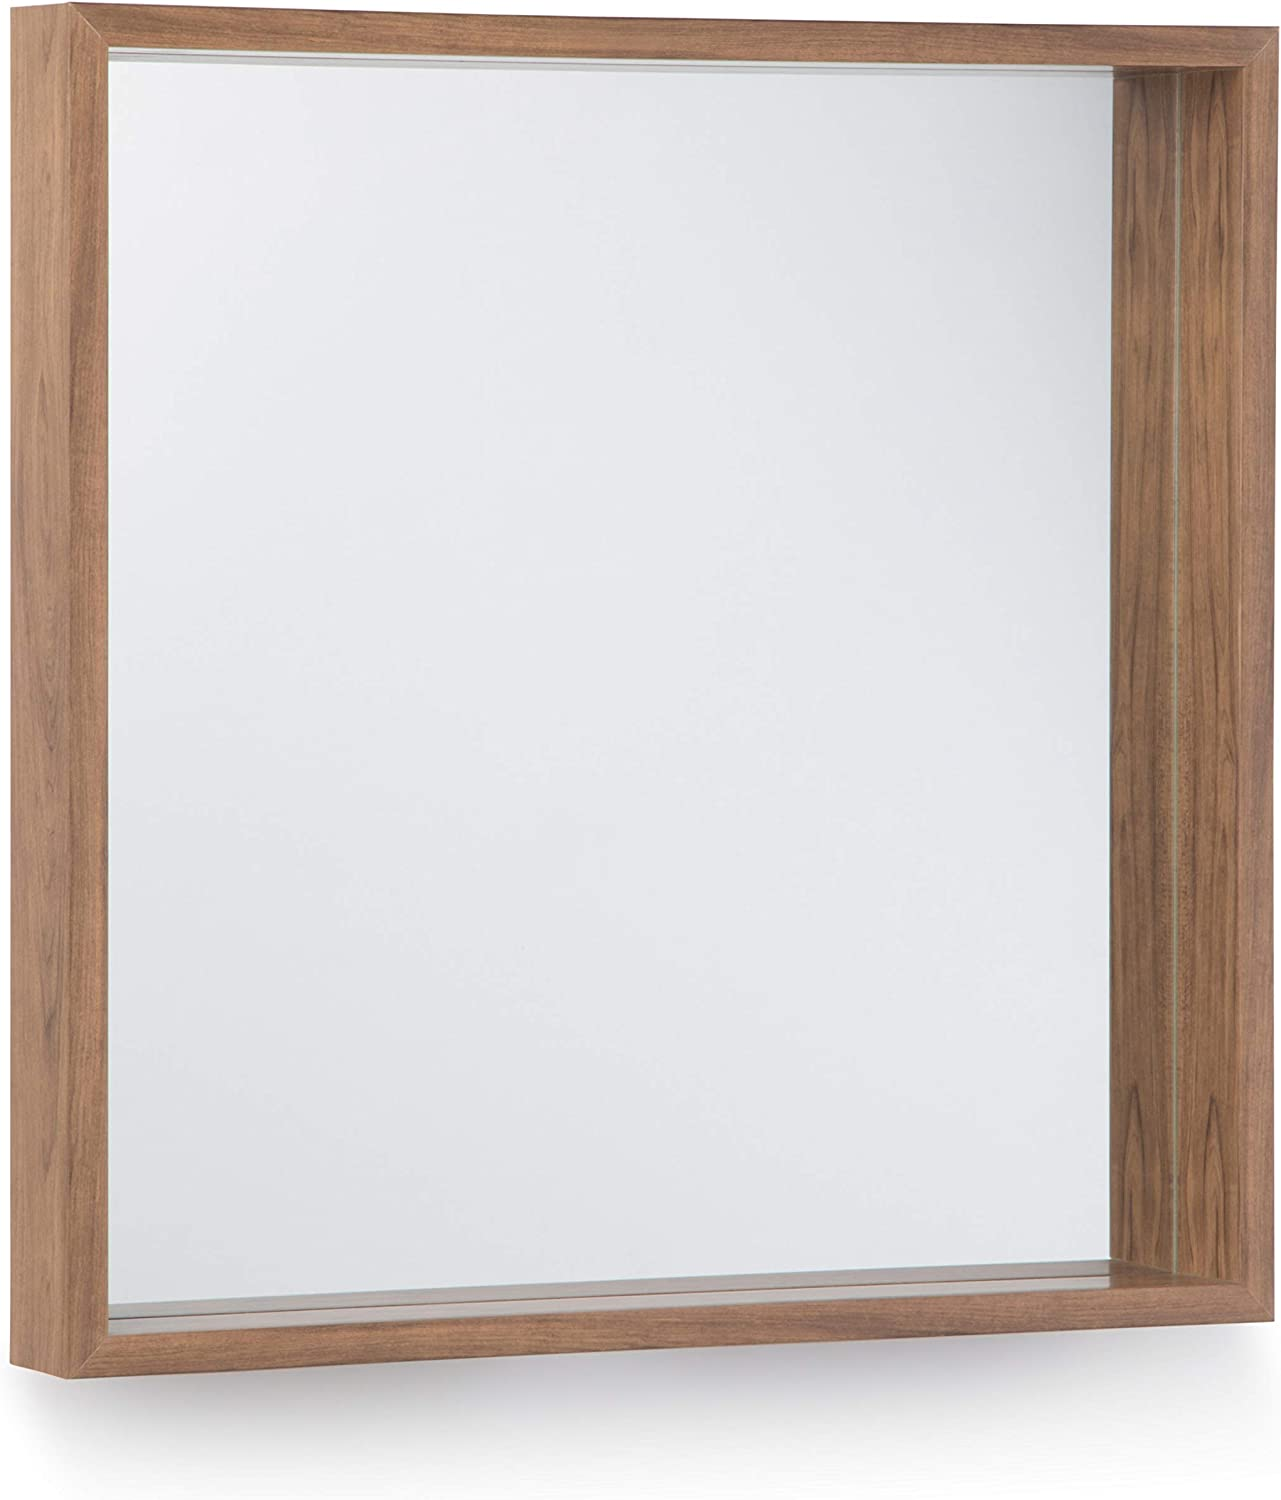 Simpli Home Armand 25 inch x 25 inch Square Transitional Décor Mirror in Natural Stain